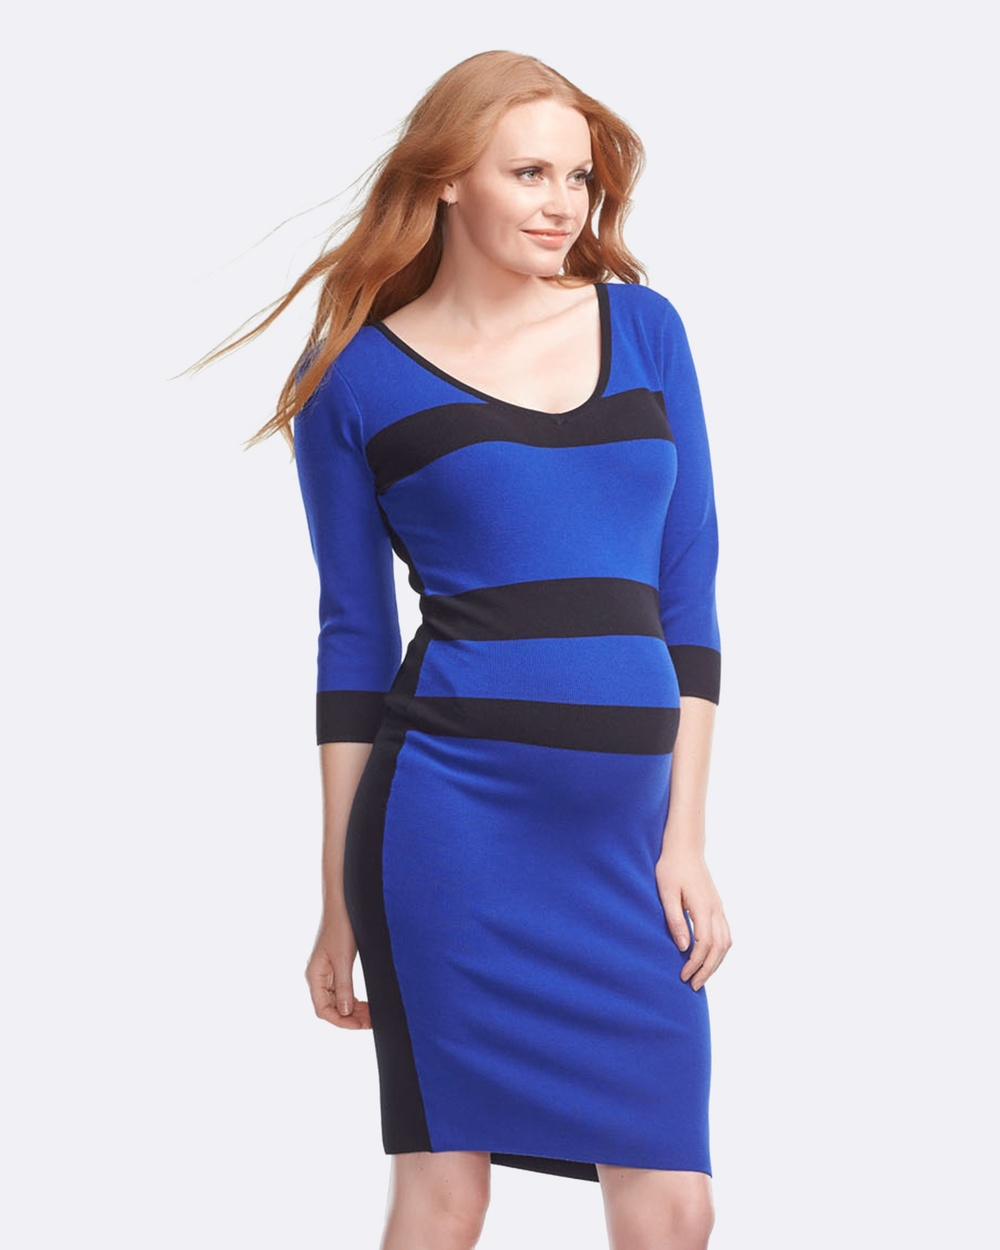 Soon Maternity Belle Zip Maternity Dress Bodycon Dresses Blue Belle Zip Maternity Dress